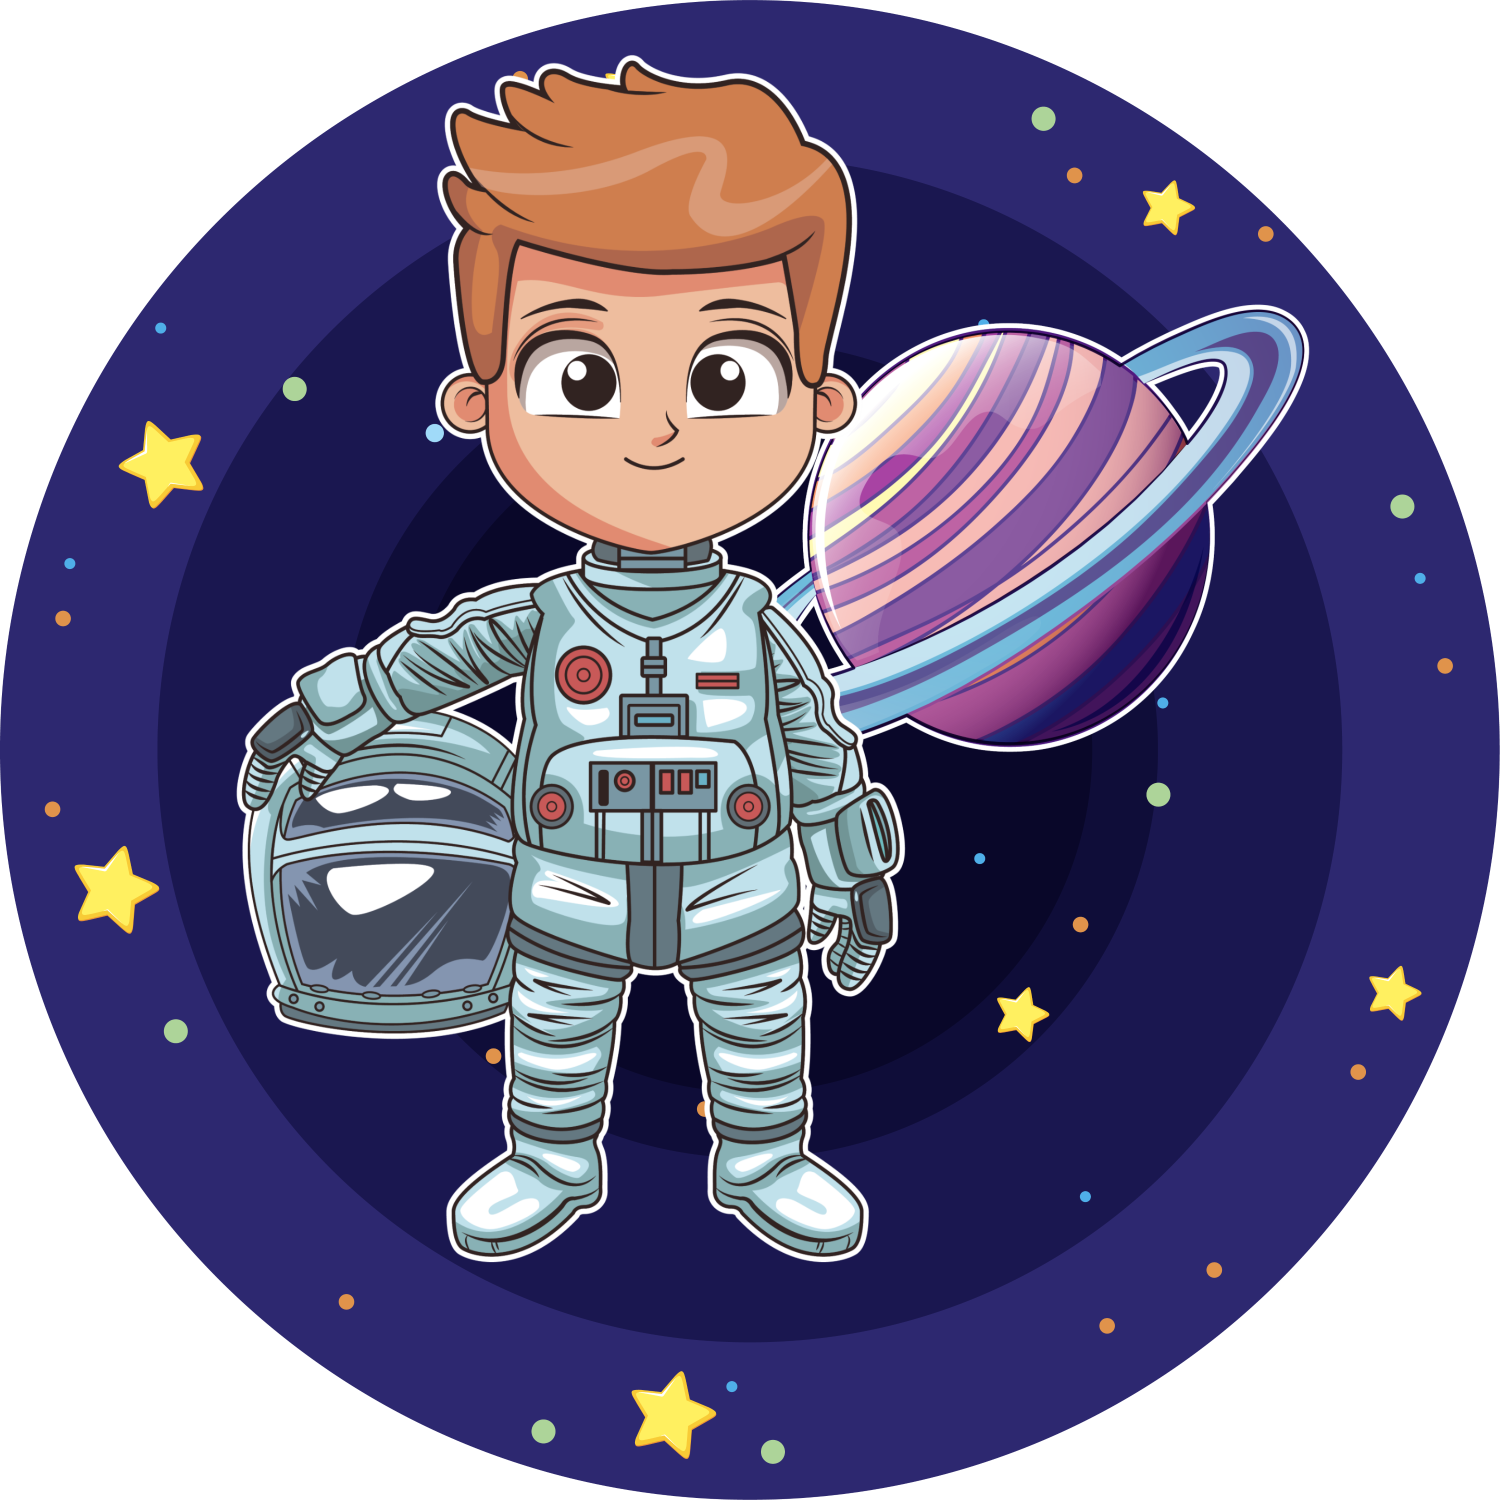 Galaxy clipart space adventure. Pin by meral y